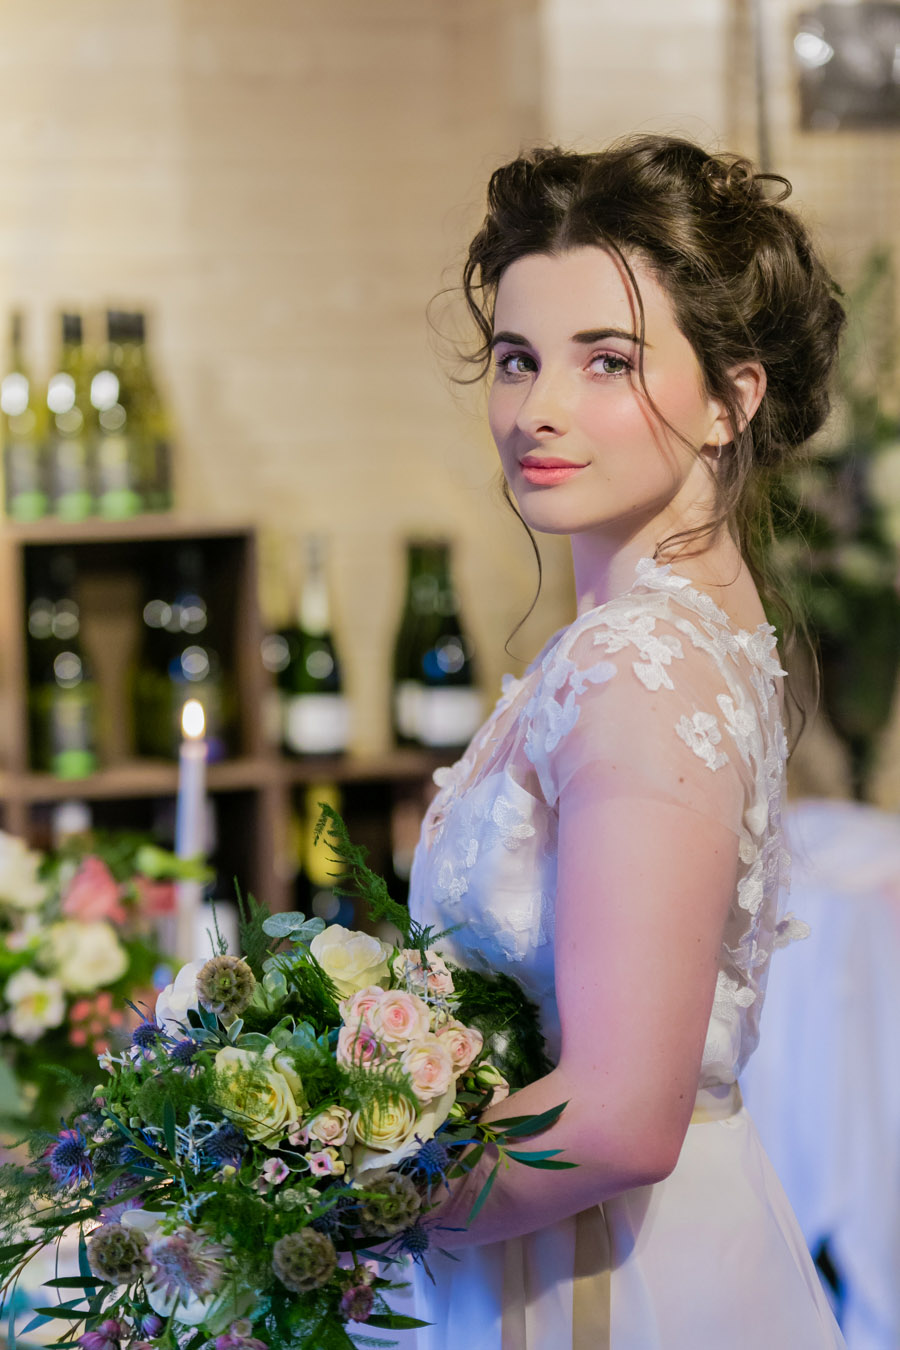 Styling by Lily & Lavender, images by Alison Wonderland Photography at Hidden Spring Vineyard (15)